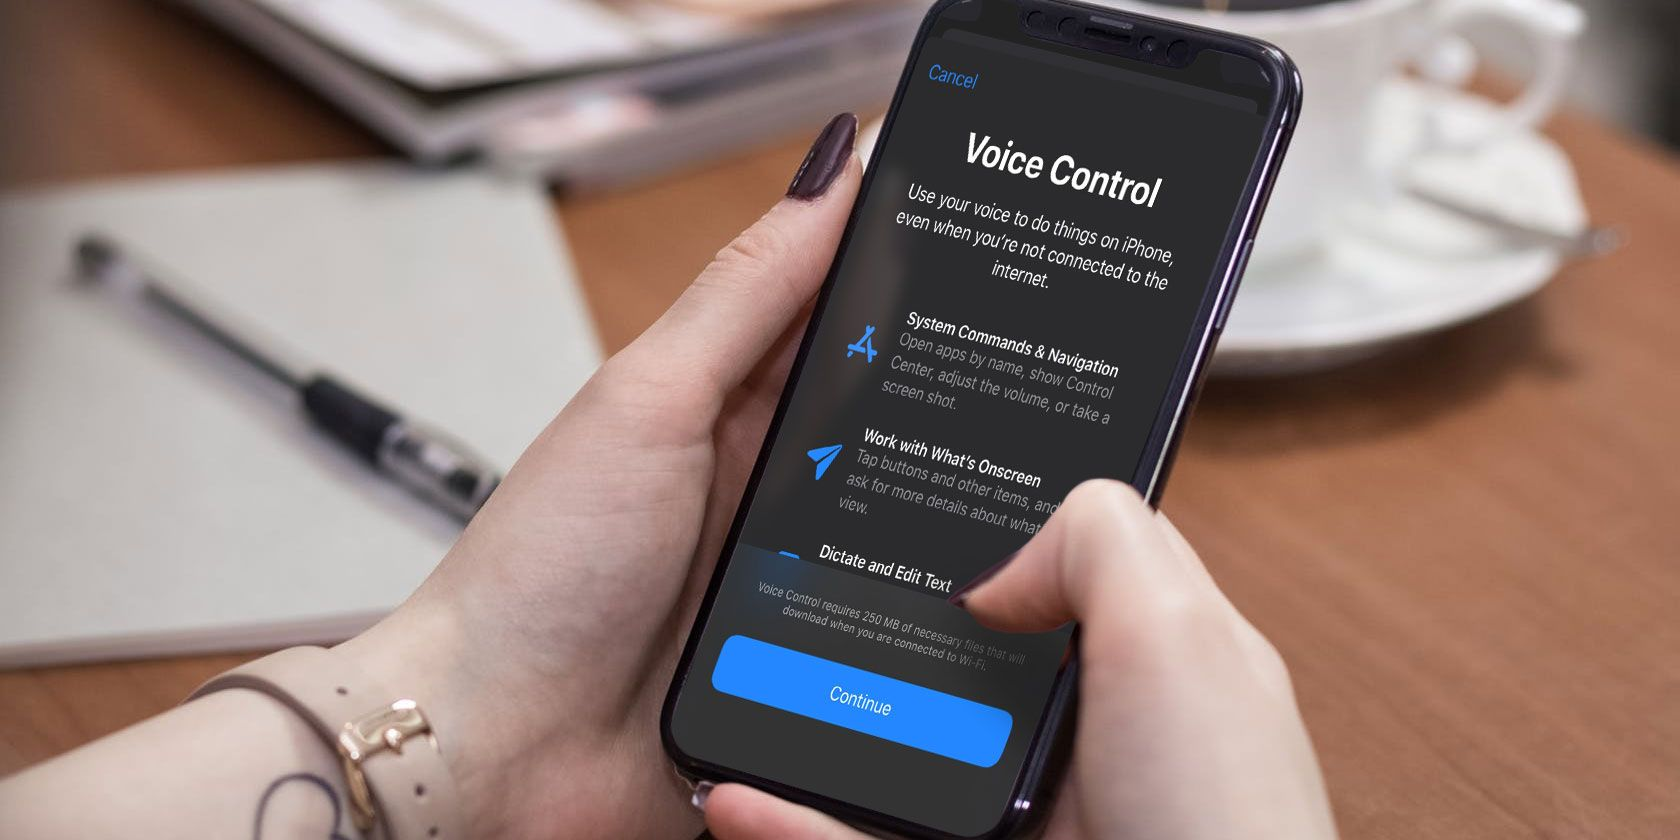 How to Unlock Your iPhone With Your Voice